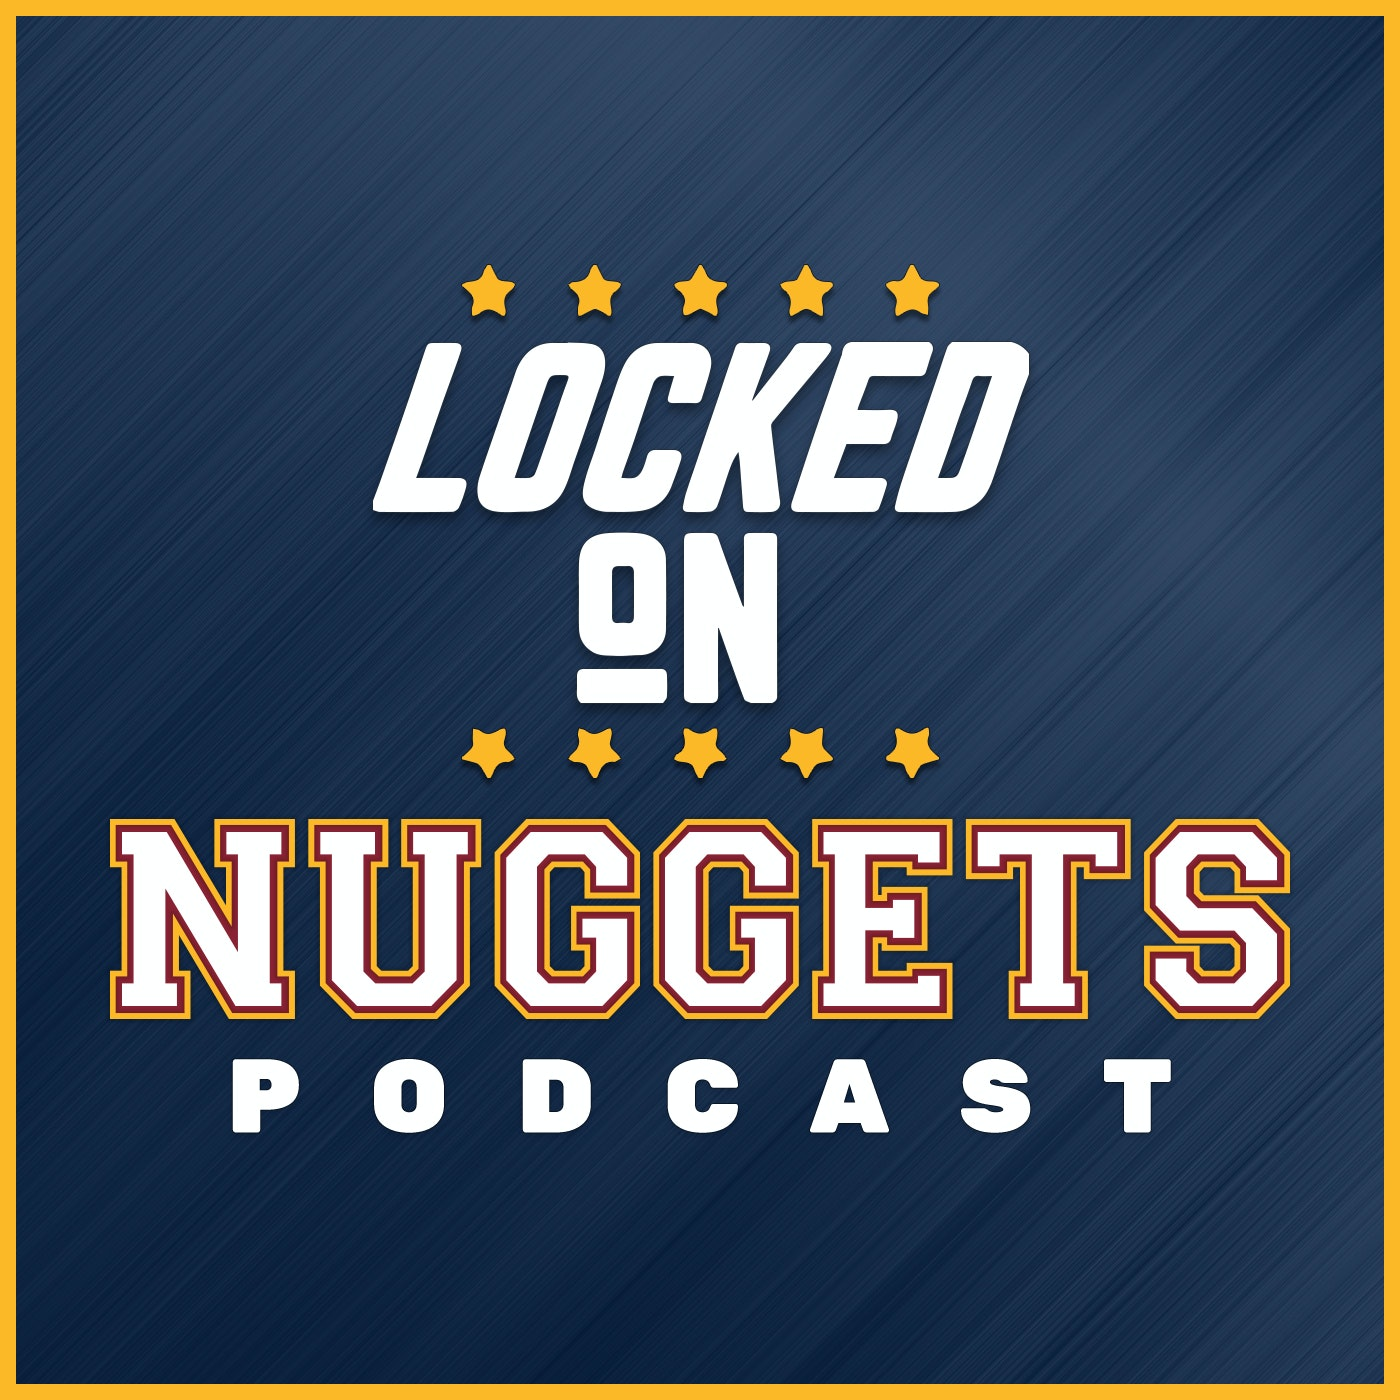 Locked on Denver Nuggets - 5.23 - Do the Nuggets have a shot at KD or Kawhi? Plus, Gary Harris evaluation. by Locked On Nuggets - Daily Podcast On The Denver Nuggets